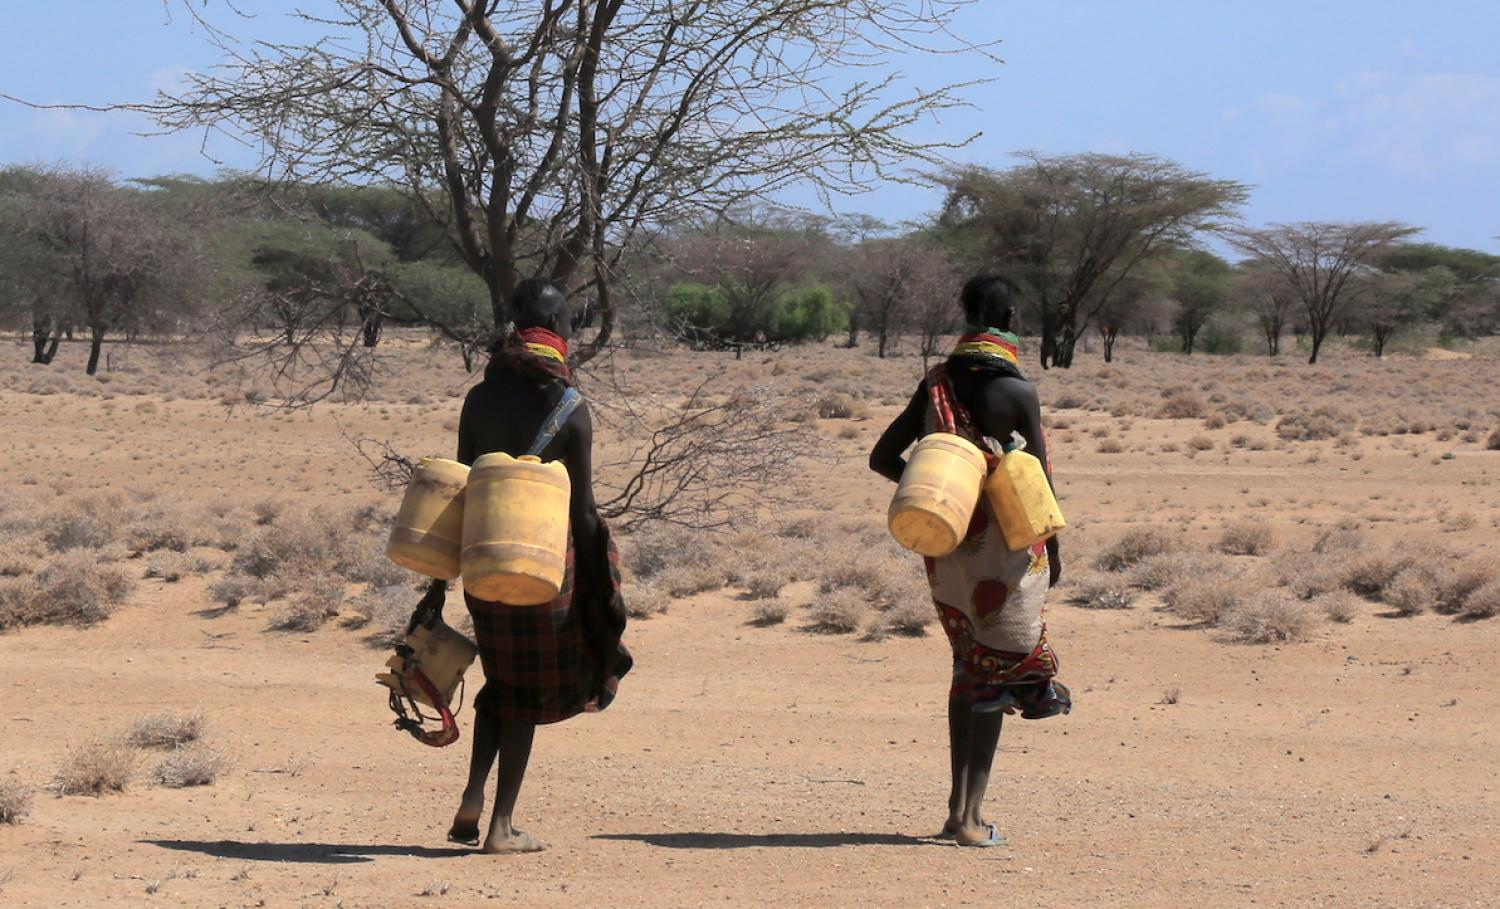 Women walking with water